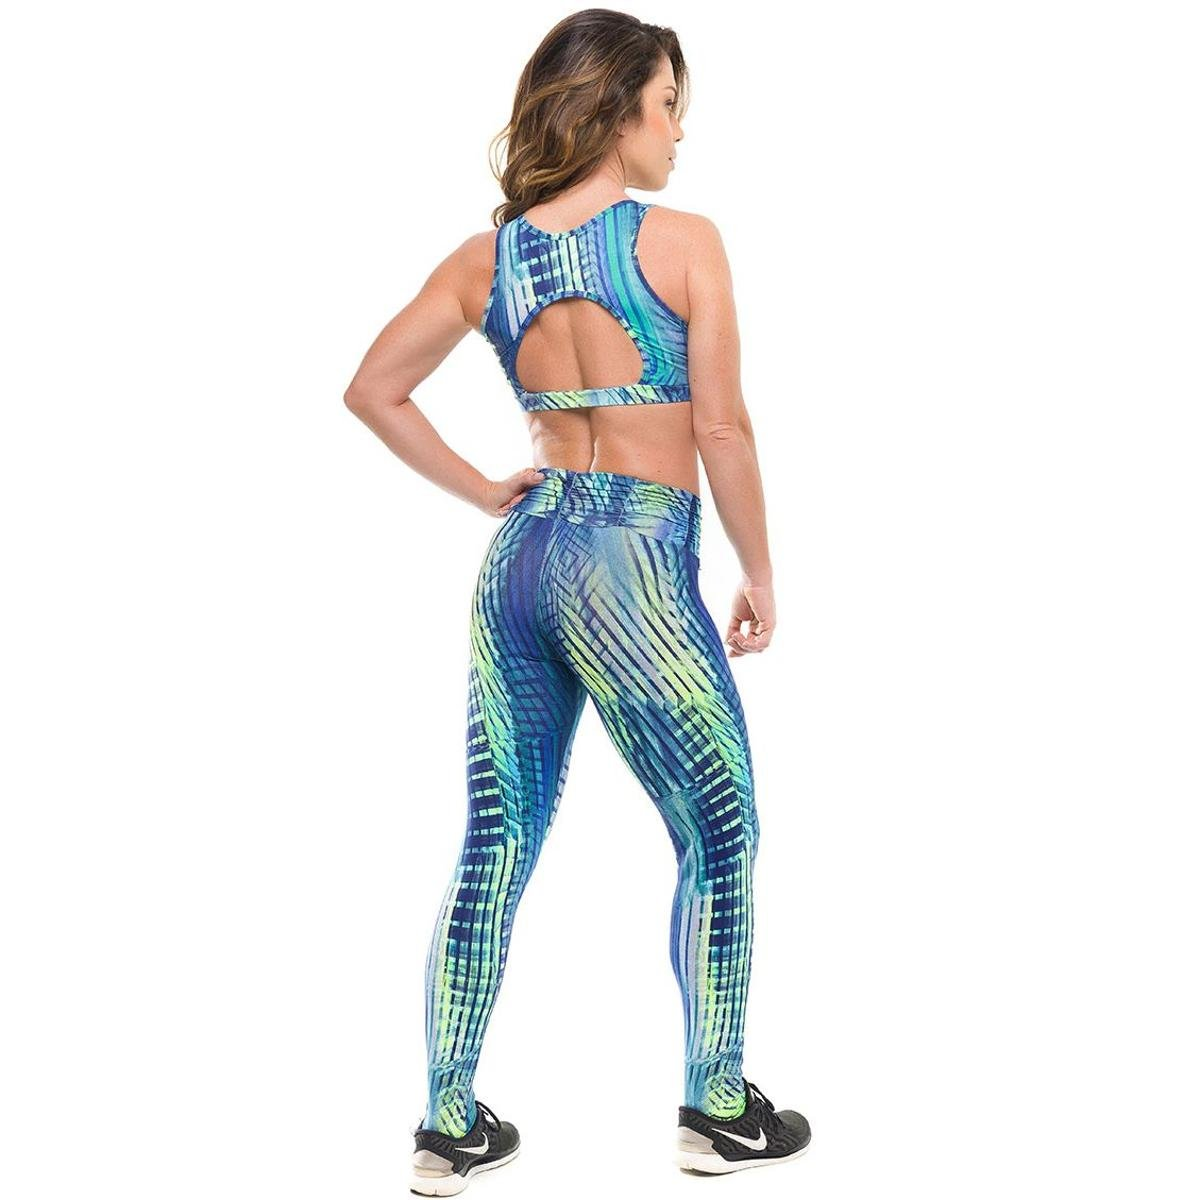 Feminino Com Solar Royal Sandy Sky Fitness Azul Legging Authentic Proteção Top Conjunto wnxqUA1Bzn